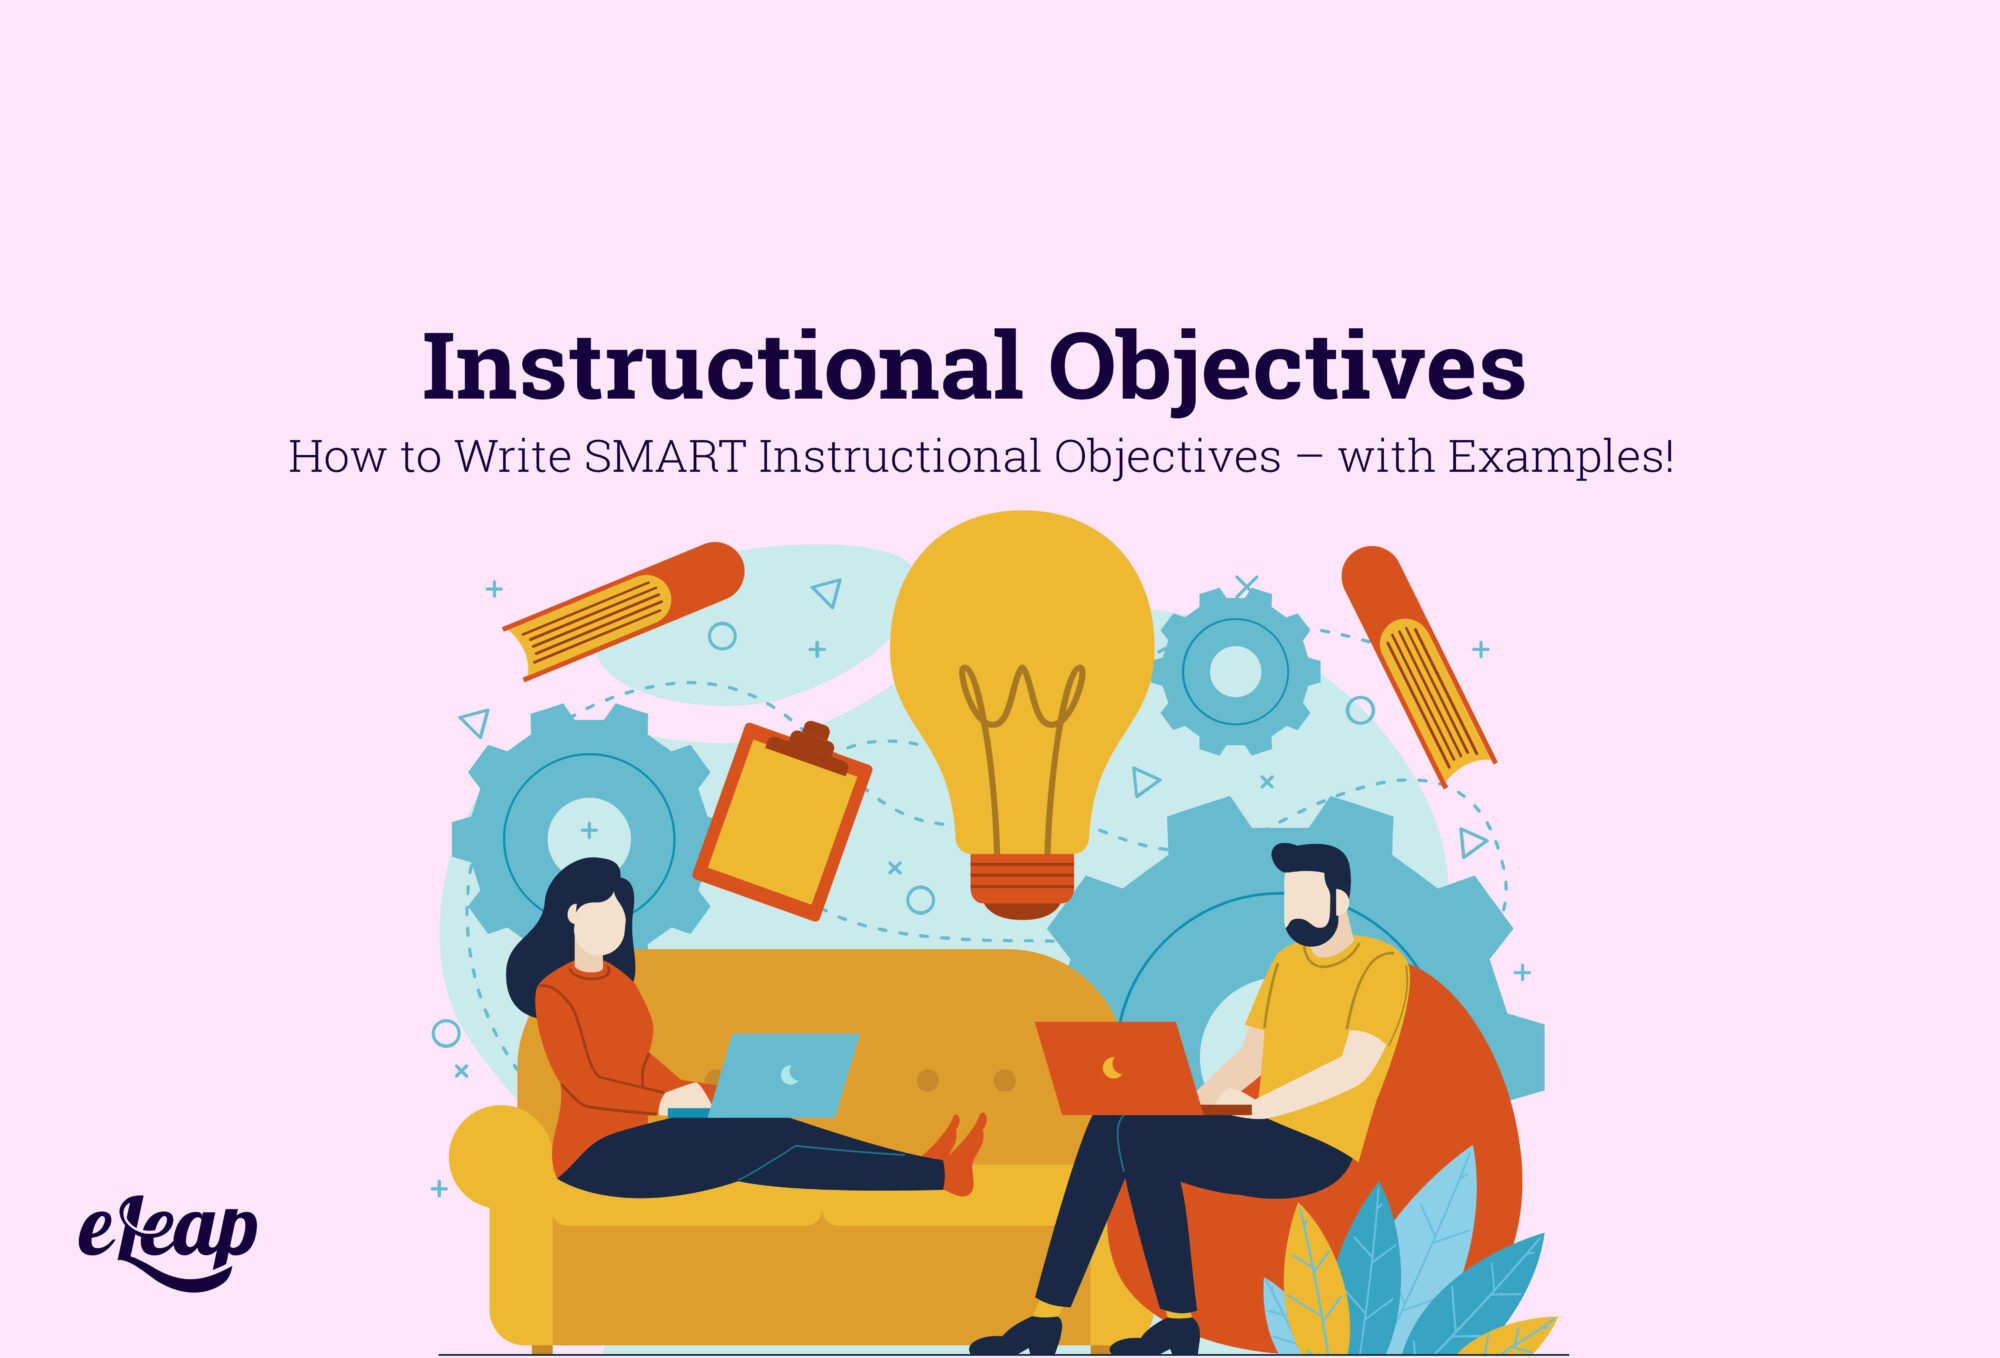 How to Write SMART Instructional Objectives – with Examples!